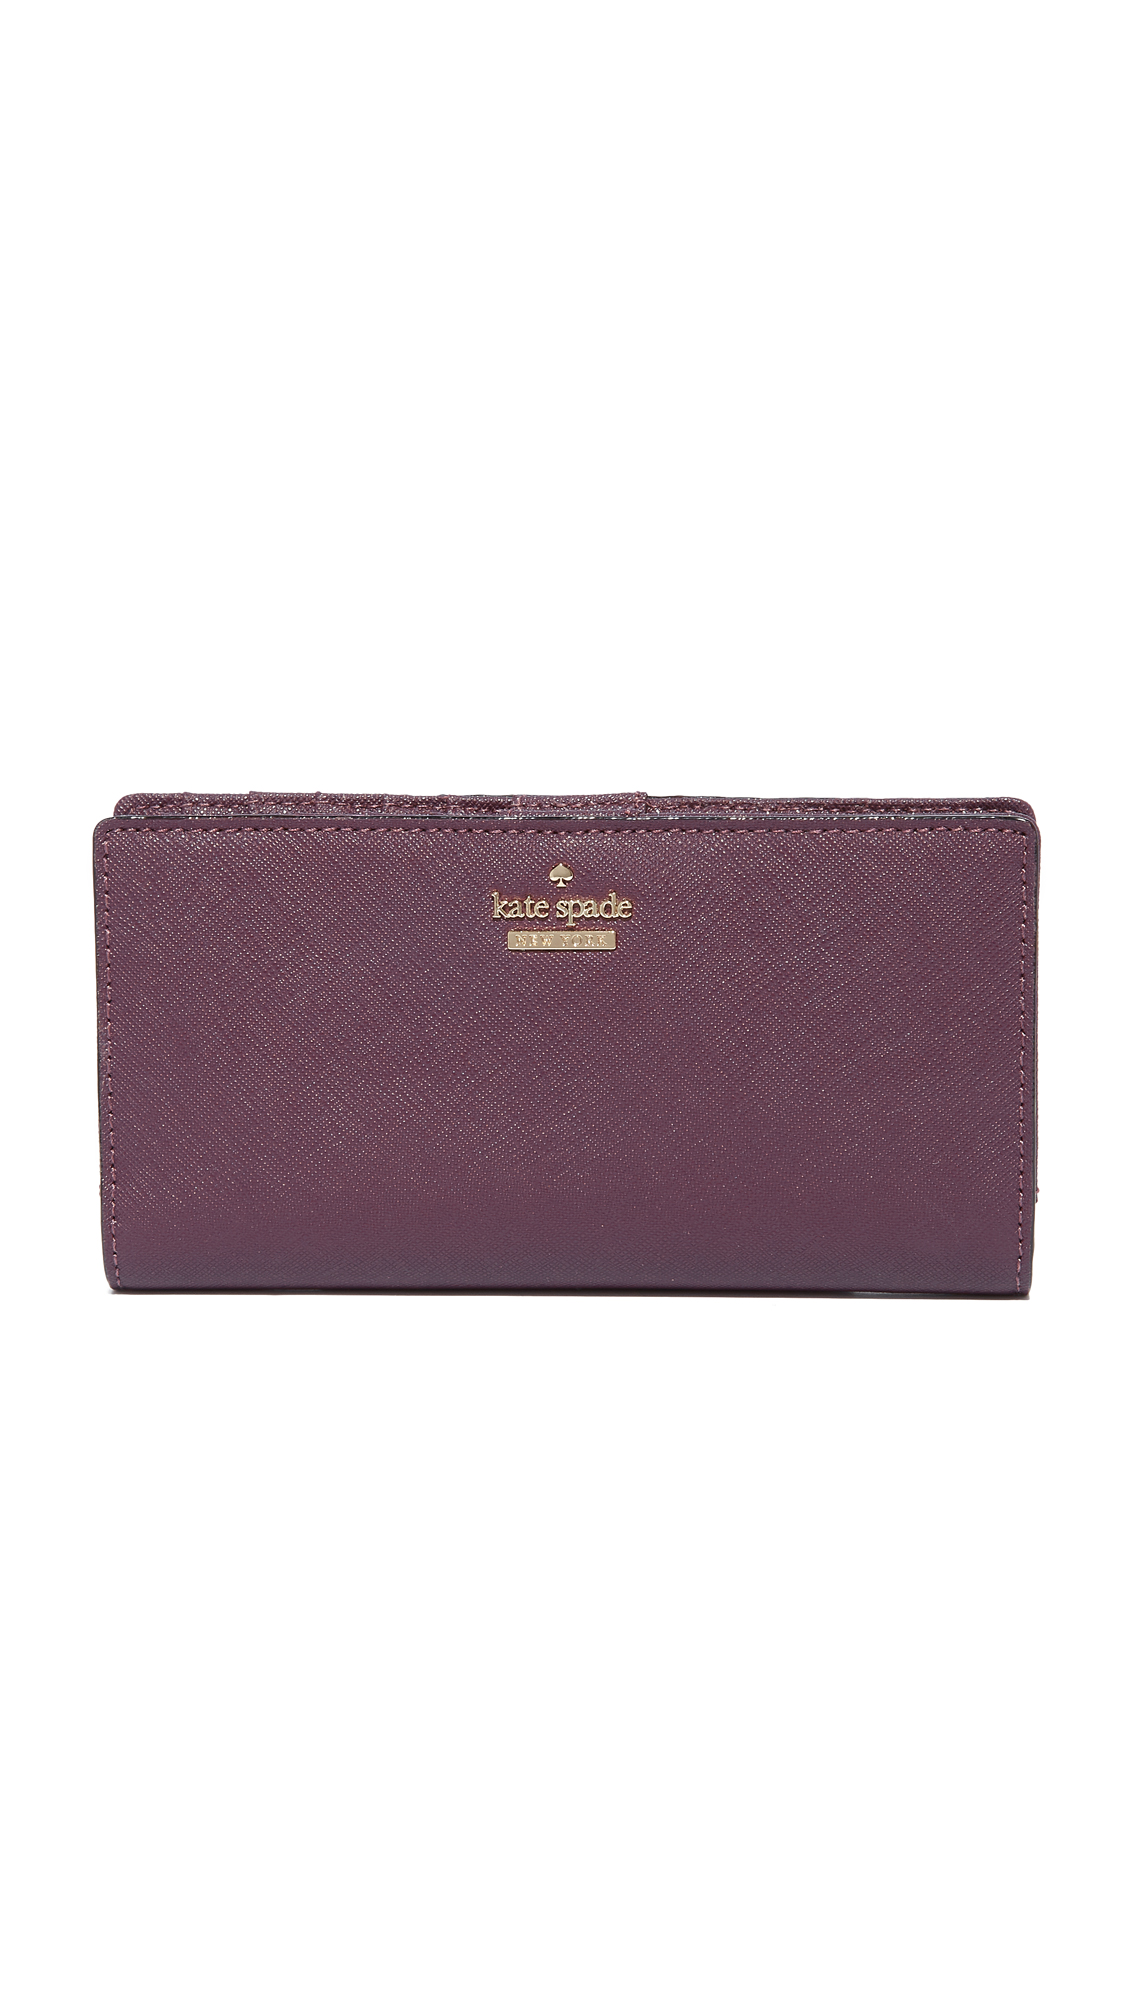 Kate Spade New York Cameron Street Stacy Wallet - Deep Plum